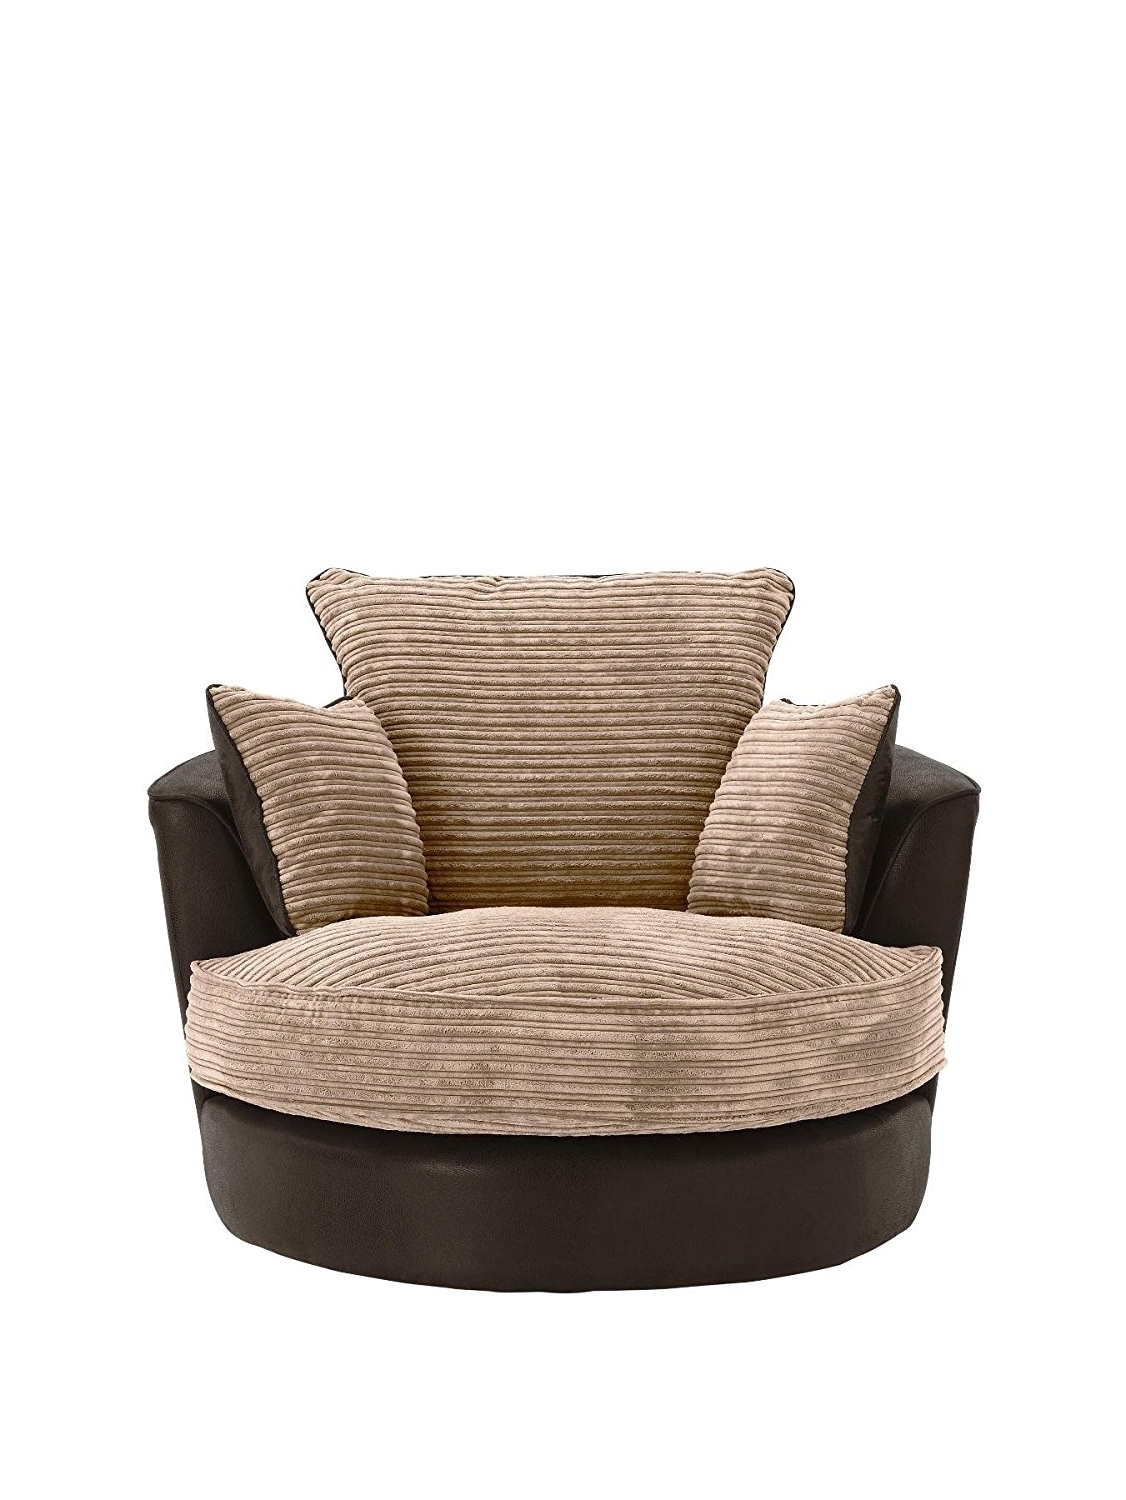 Best Home Chair Decoration For Widely Used Cuddler Swivel Sofa Chairs (View 3 of 15)